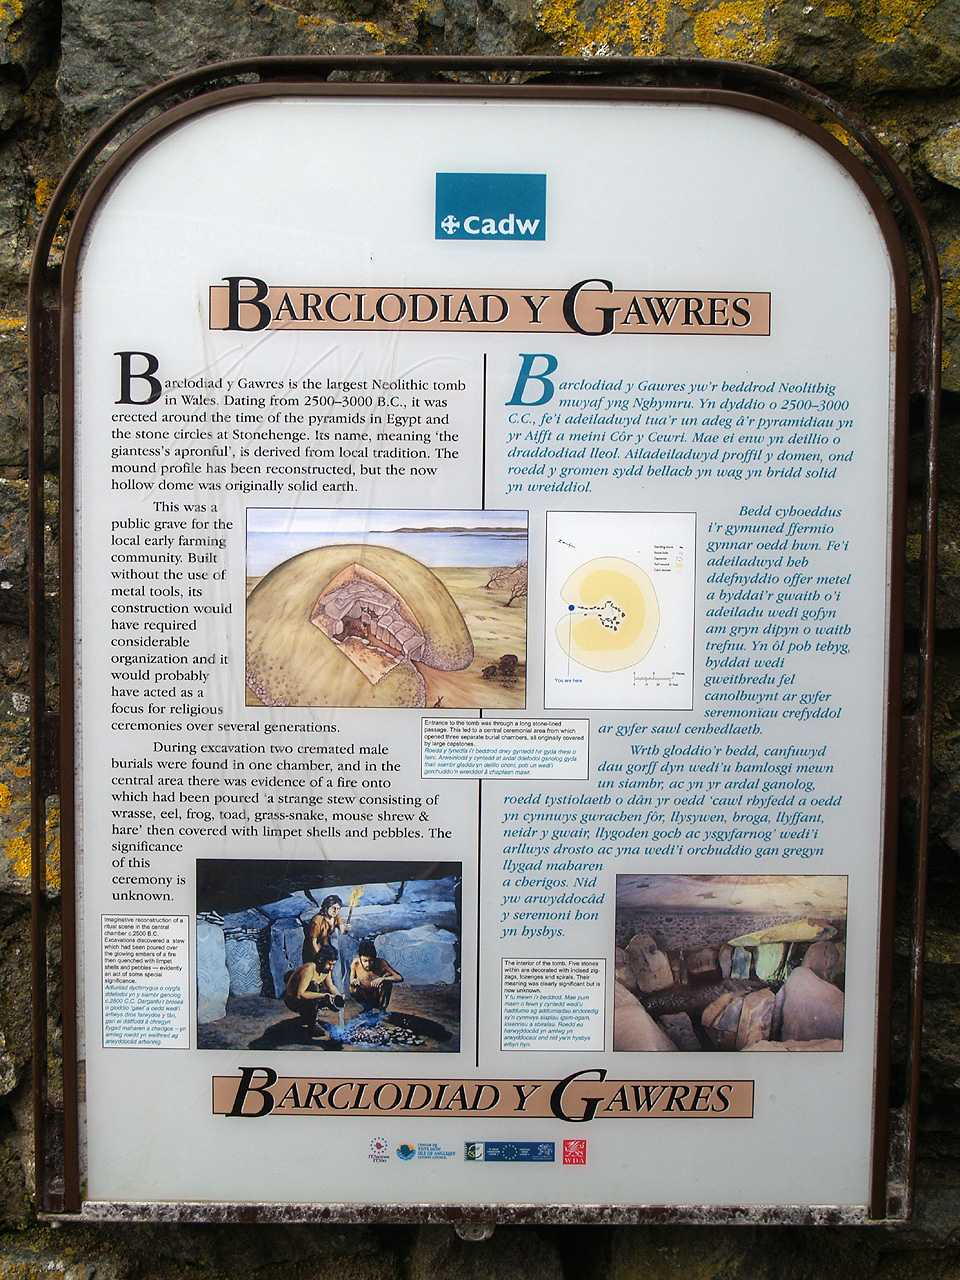 Anglesey, Llanfaelog, Barclodiad-y-Gawres Burial Chambers - CADW Information Sign